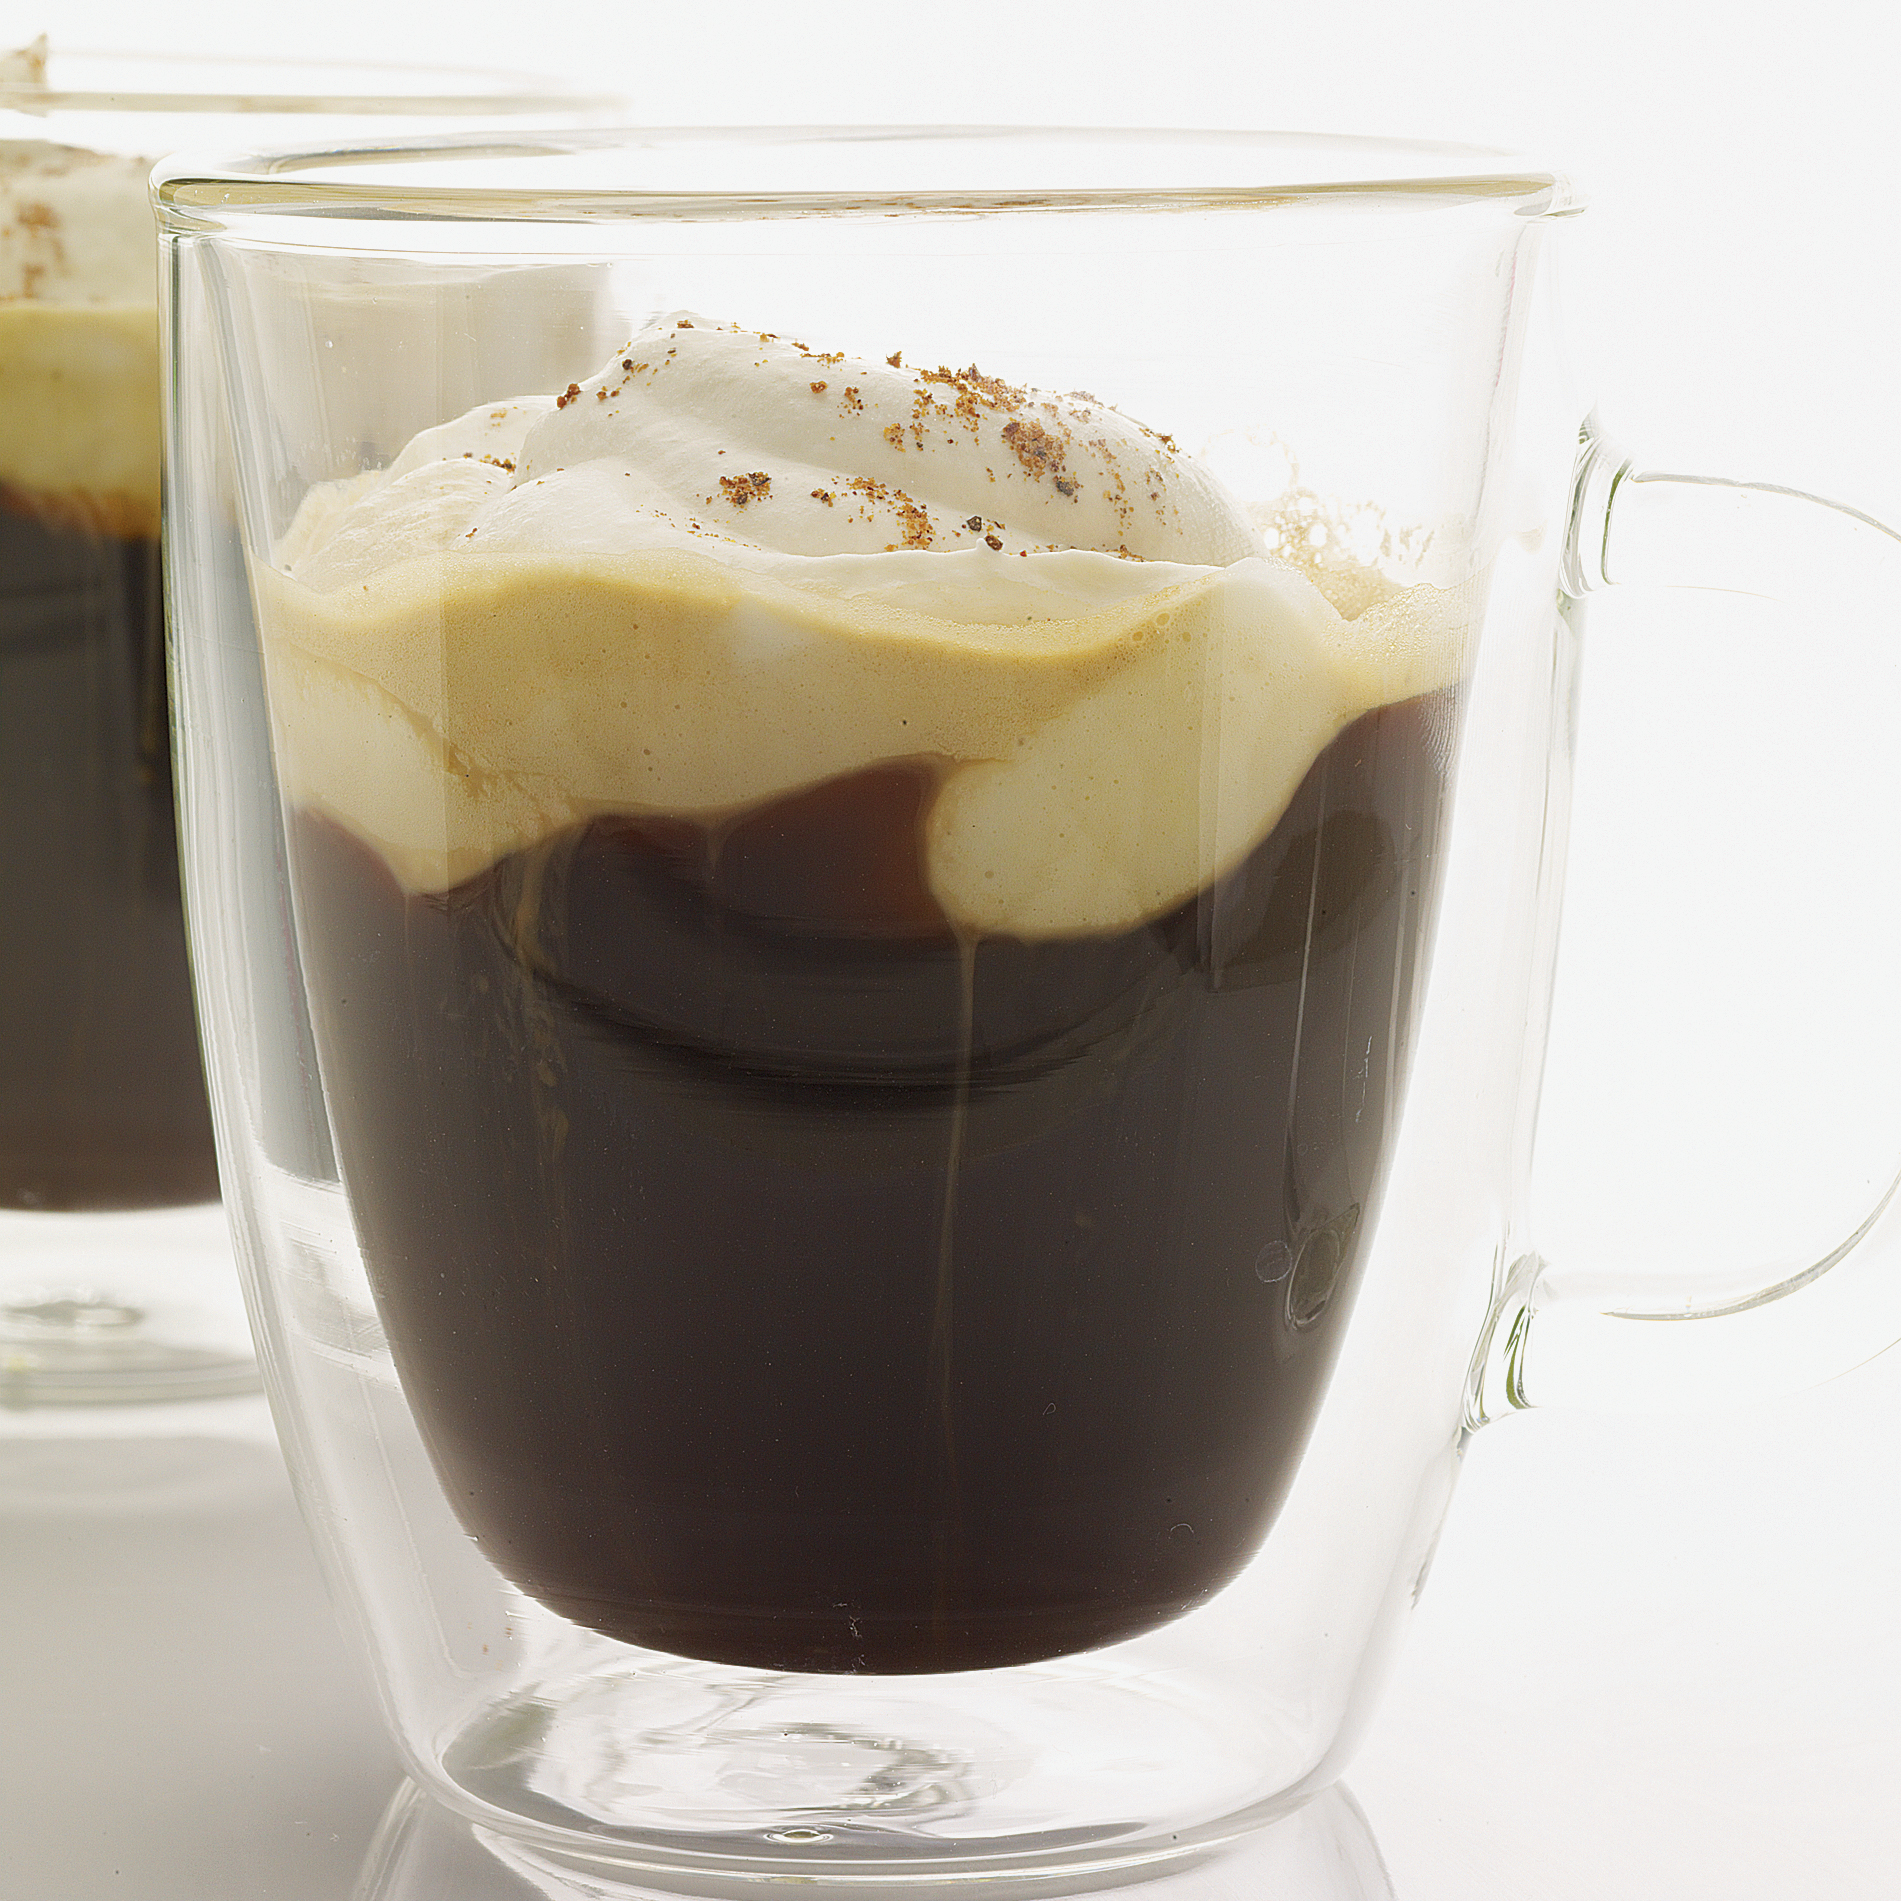 """Warming cocktails on your mind? Bartender Steve Peters dreamed up Caffè di Alpi (""""Alpine Coffee"""" in Italian) as a deliciously warming après-ski drink."""